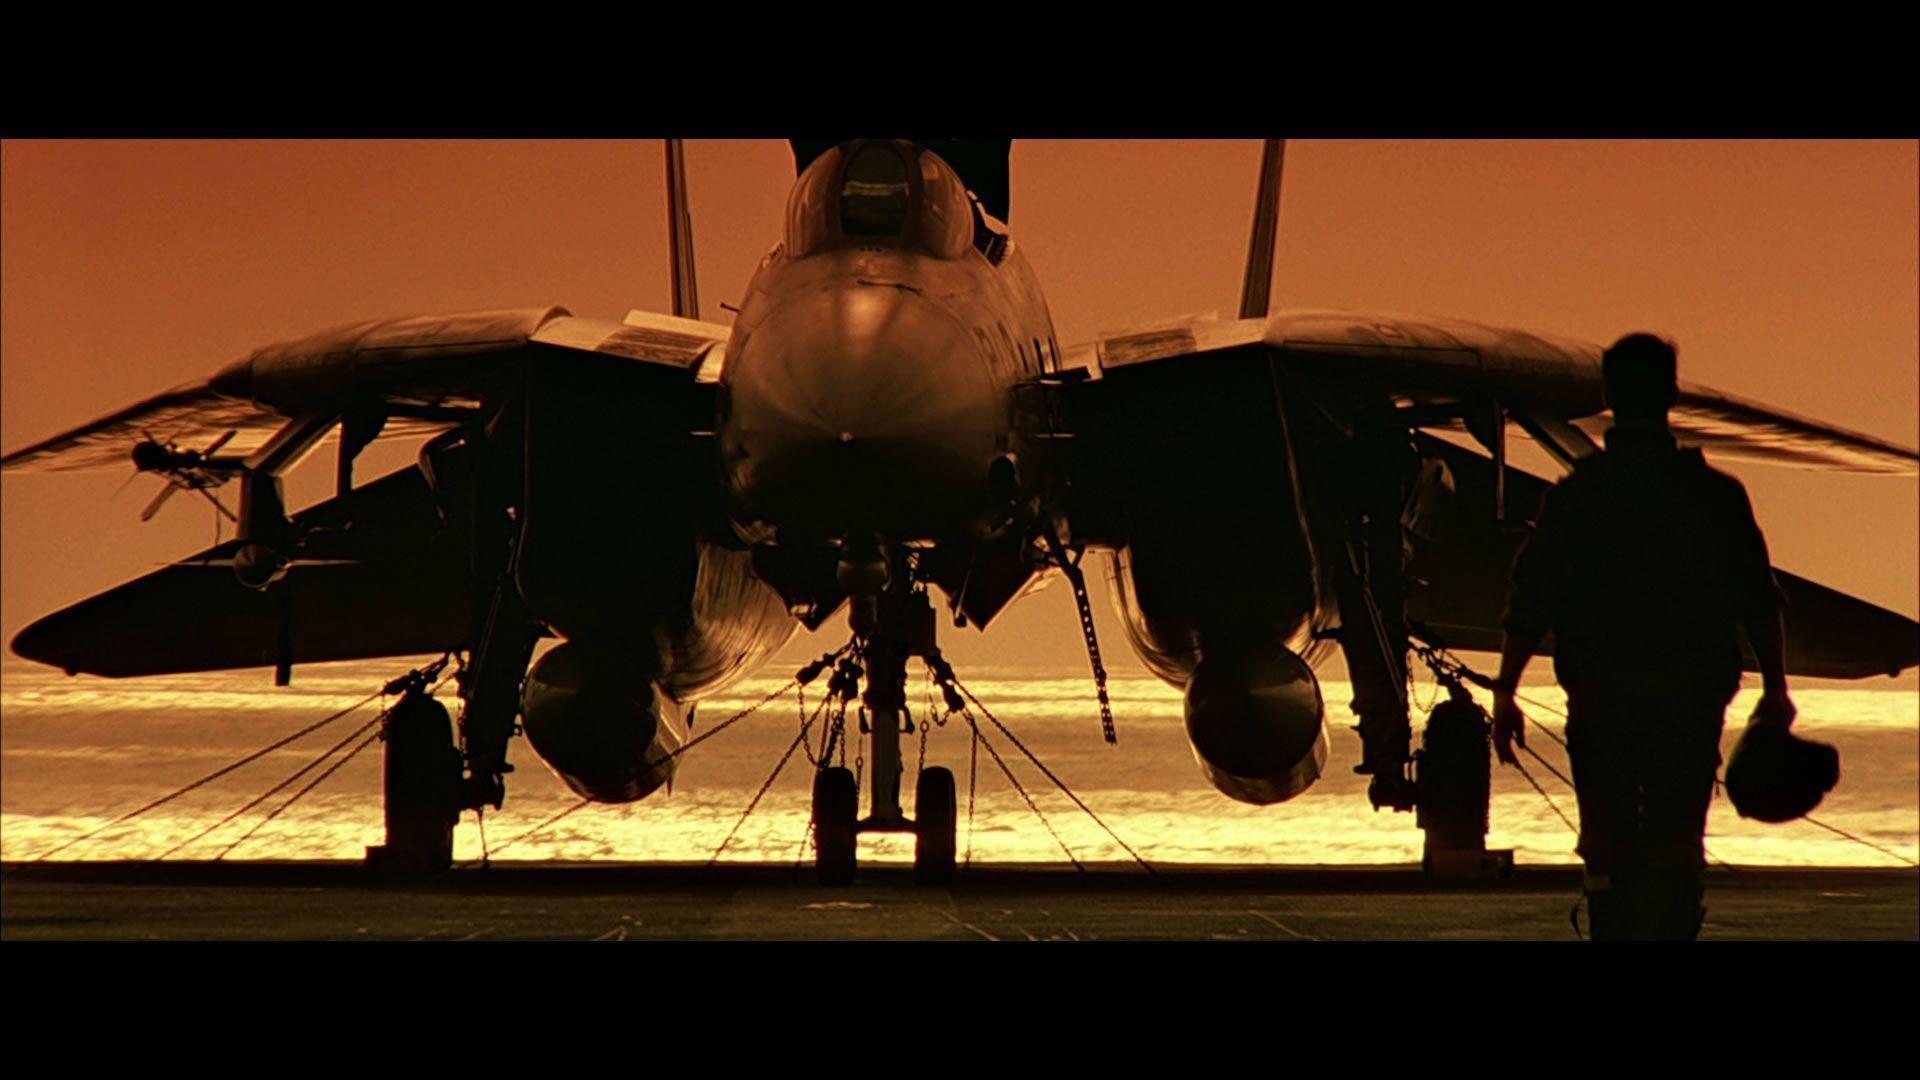 Top Gun Wallpaper Wallpapertag